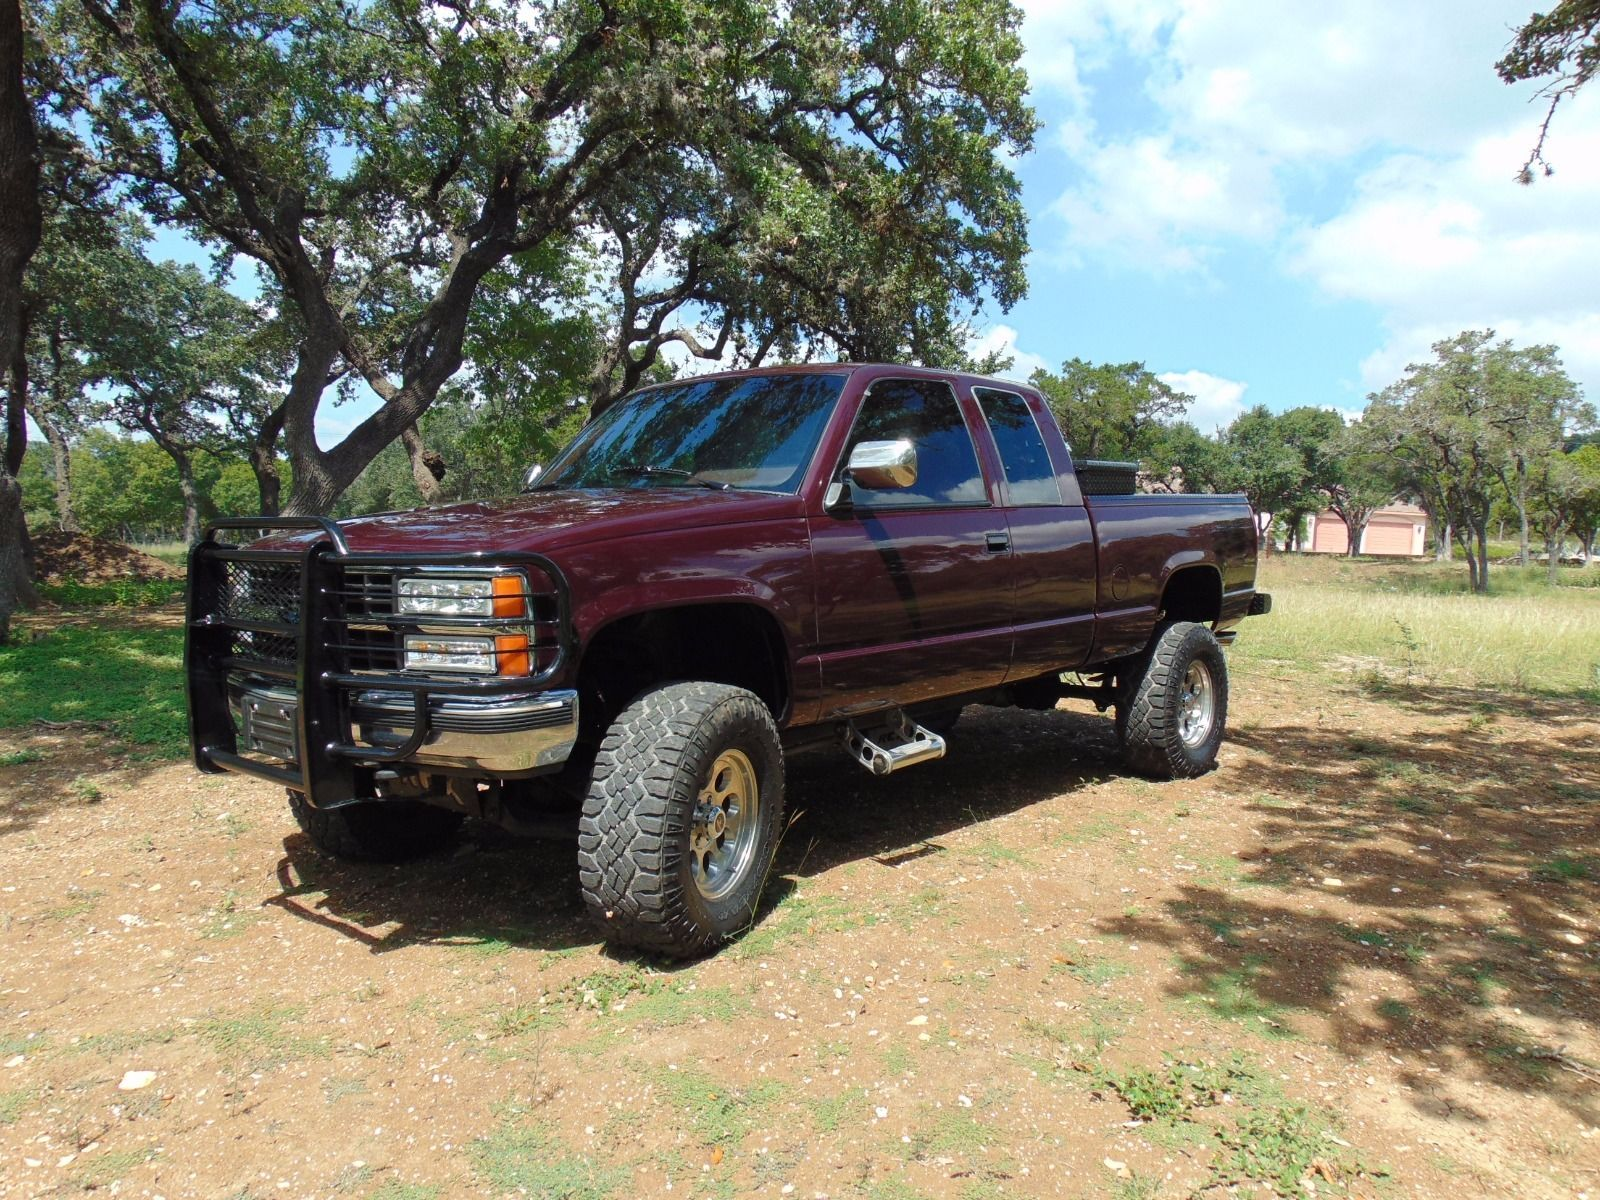 Lifted Trucks For Sale In Texas >> Burgundy hauler 1993 Chevrolet Pickups lifted for sale